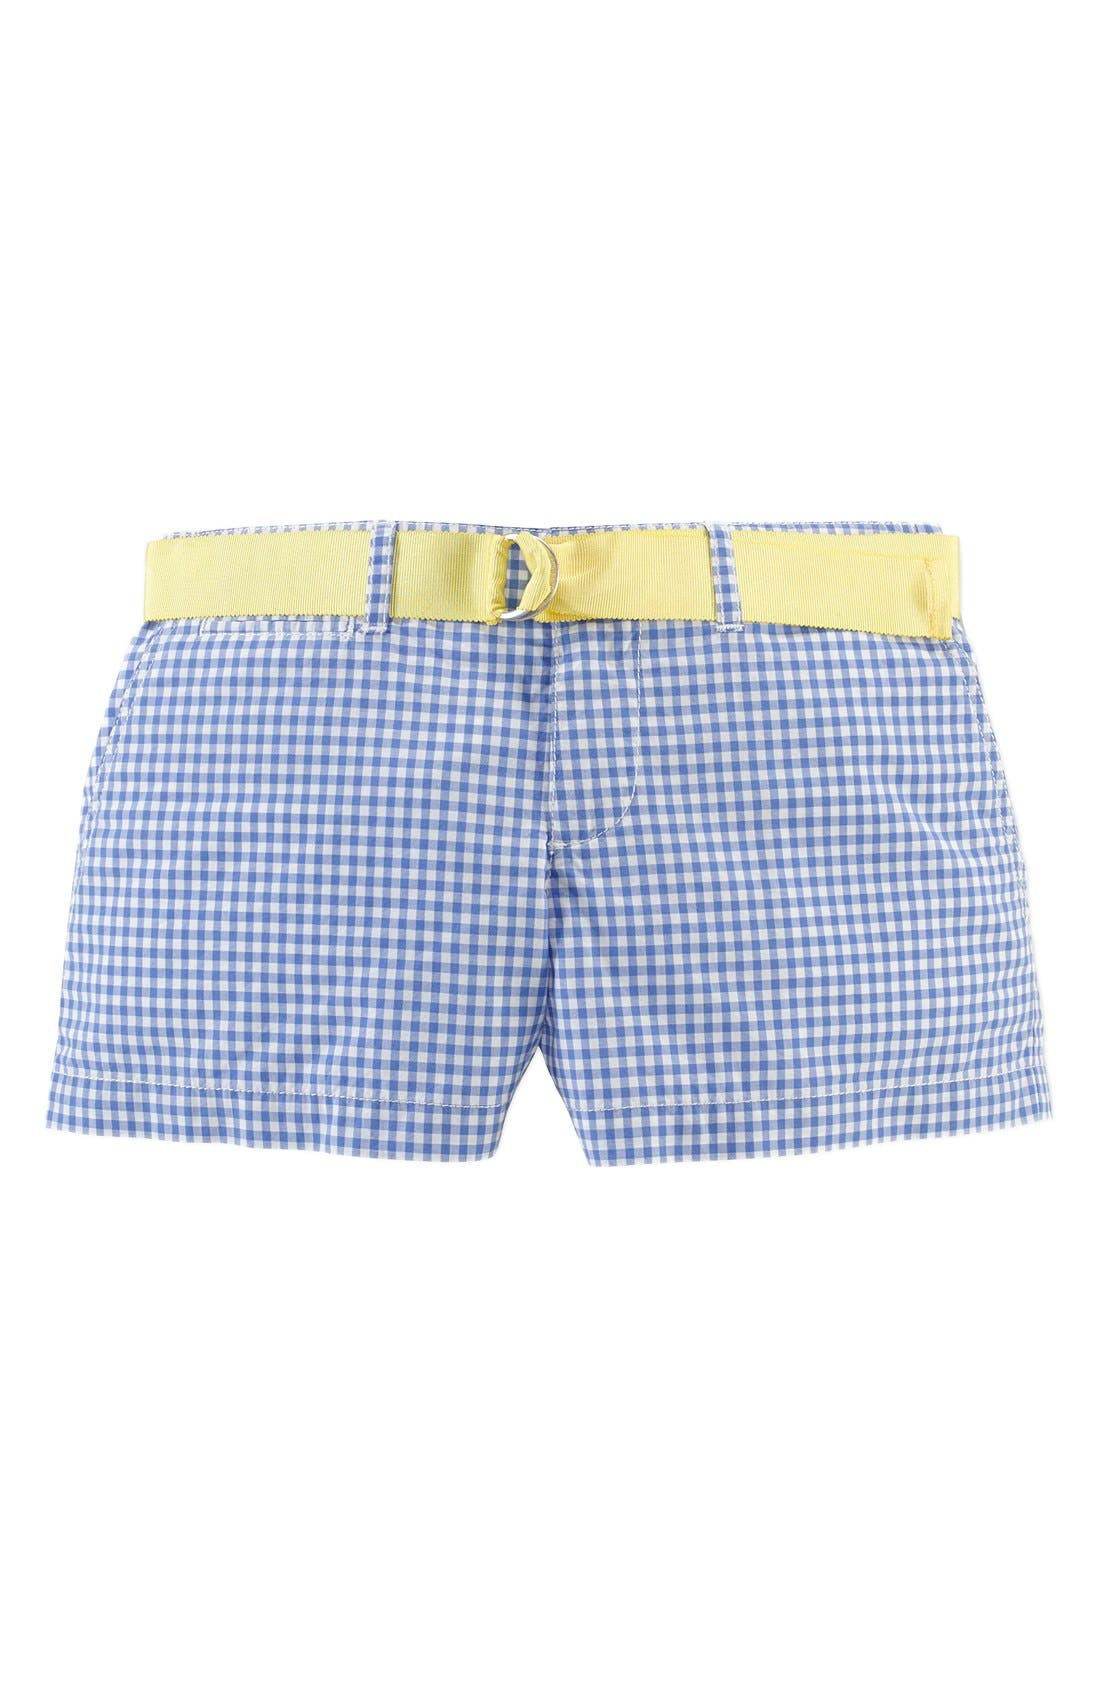 Alternate Image 1 Selected - Ralph Lauren Gingham Cotton Poplin Shorts (Big Girls)